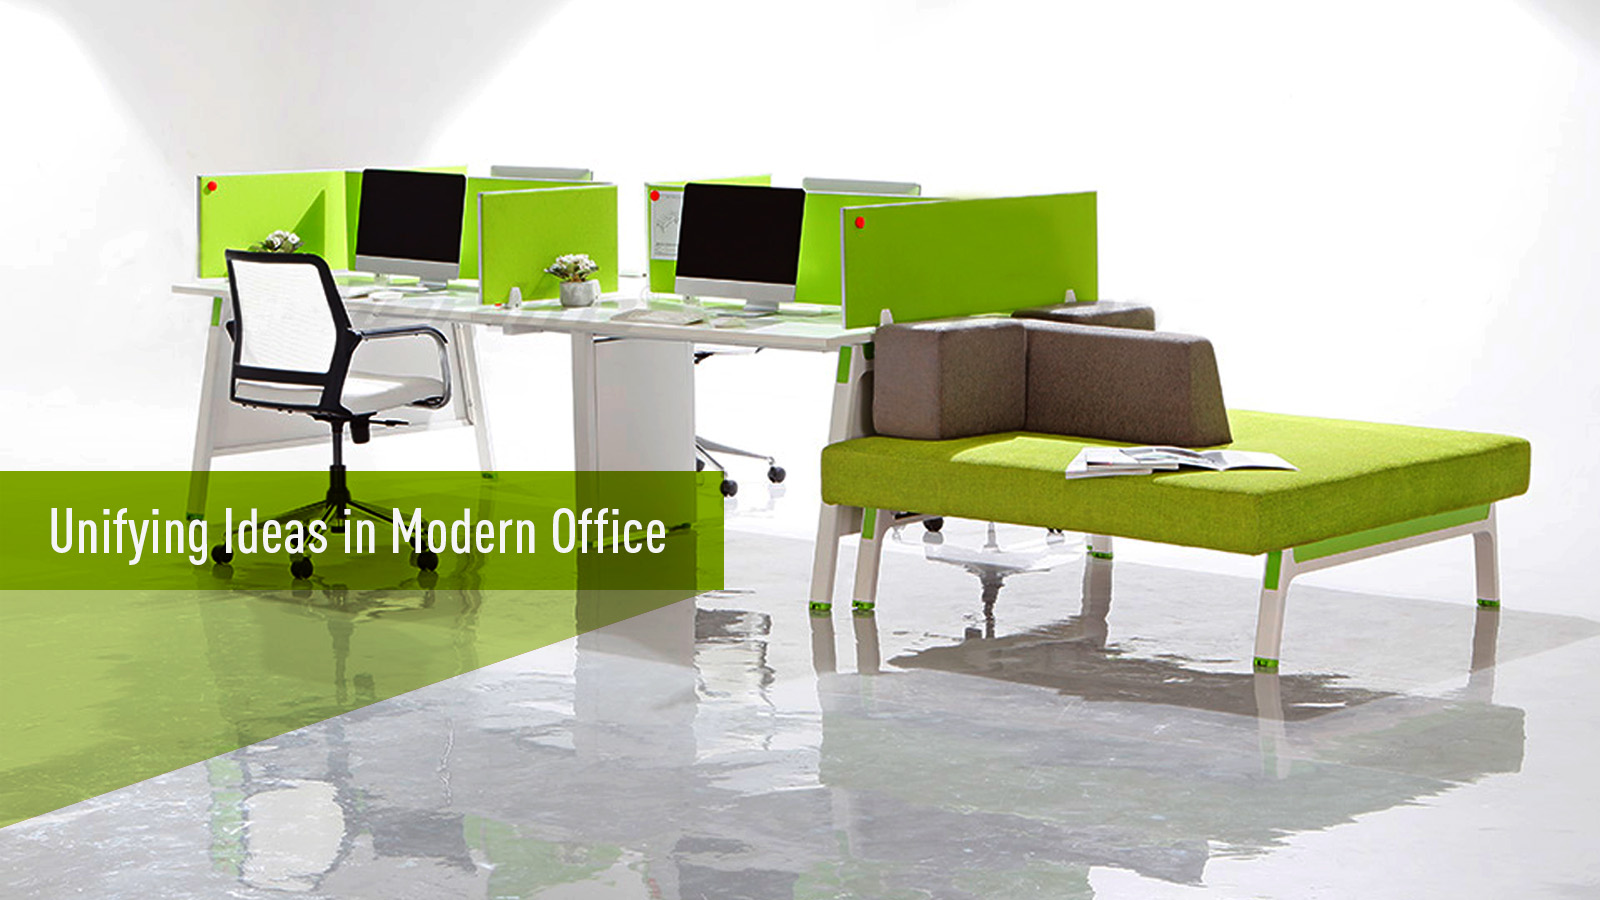 Office furniture online india example Top online furniture stores